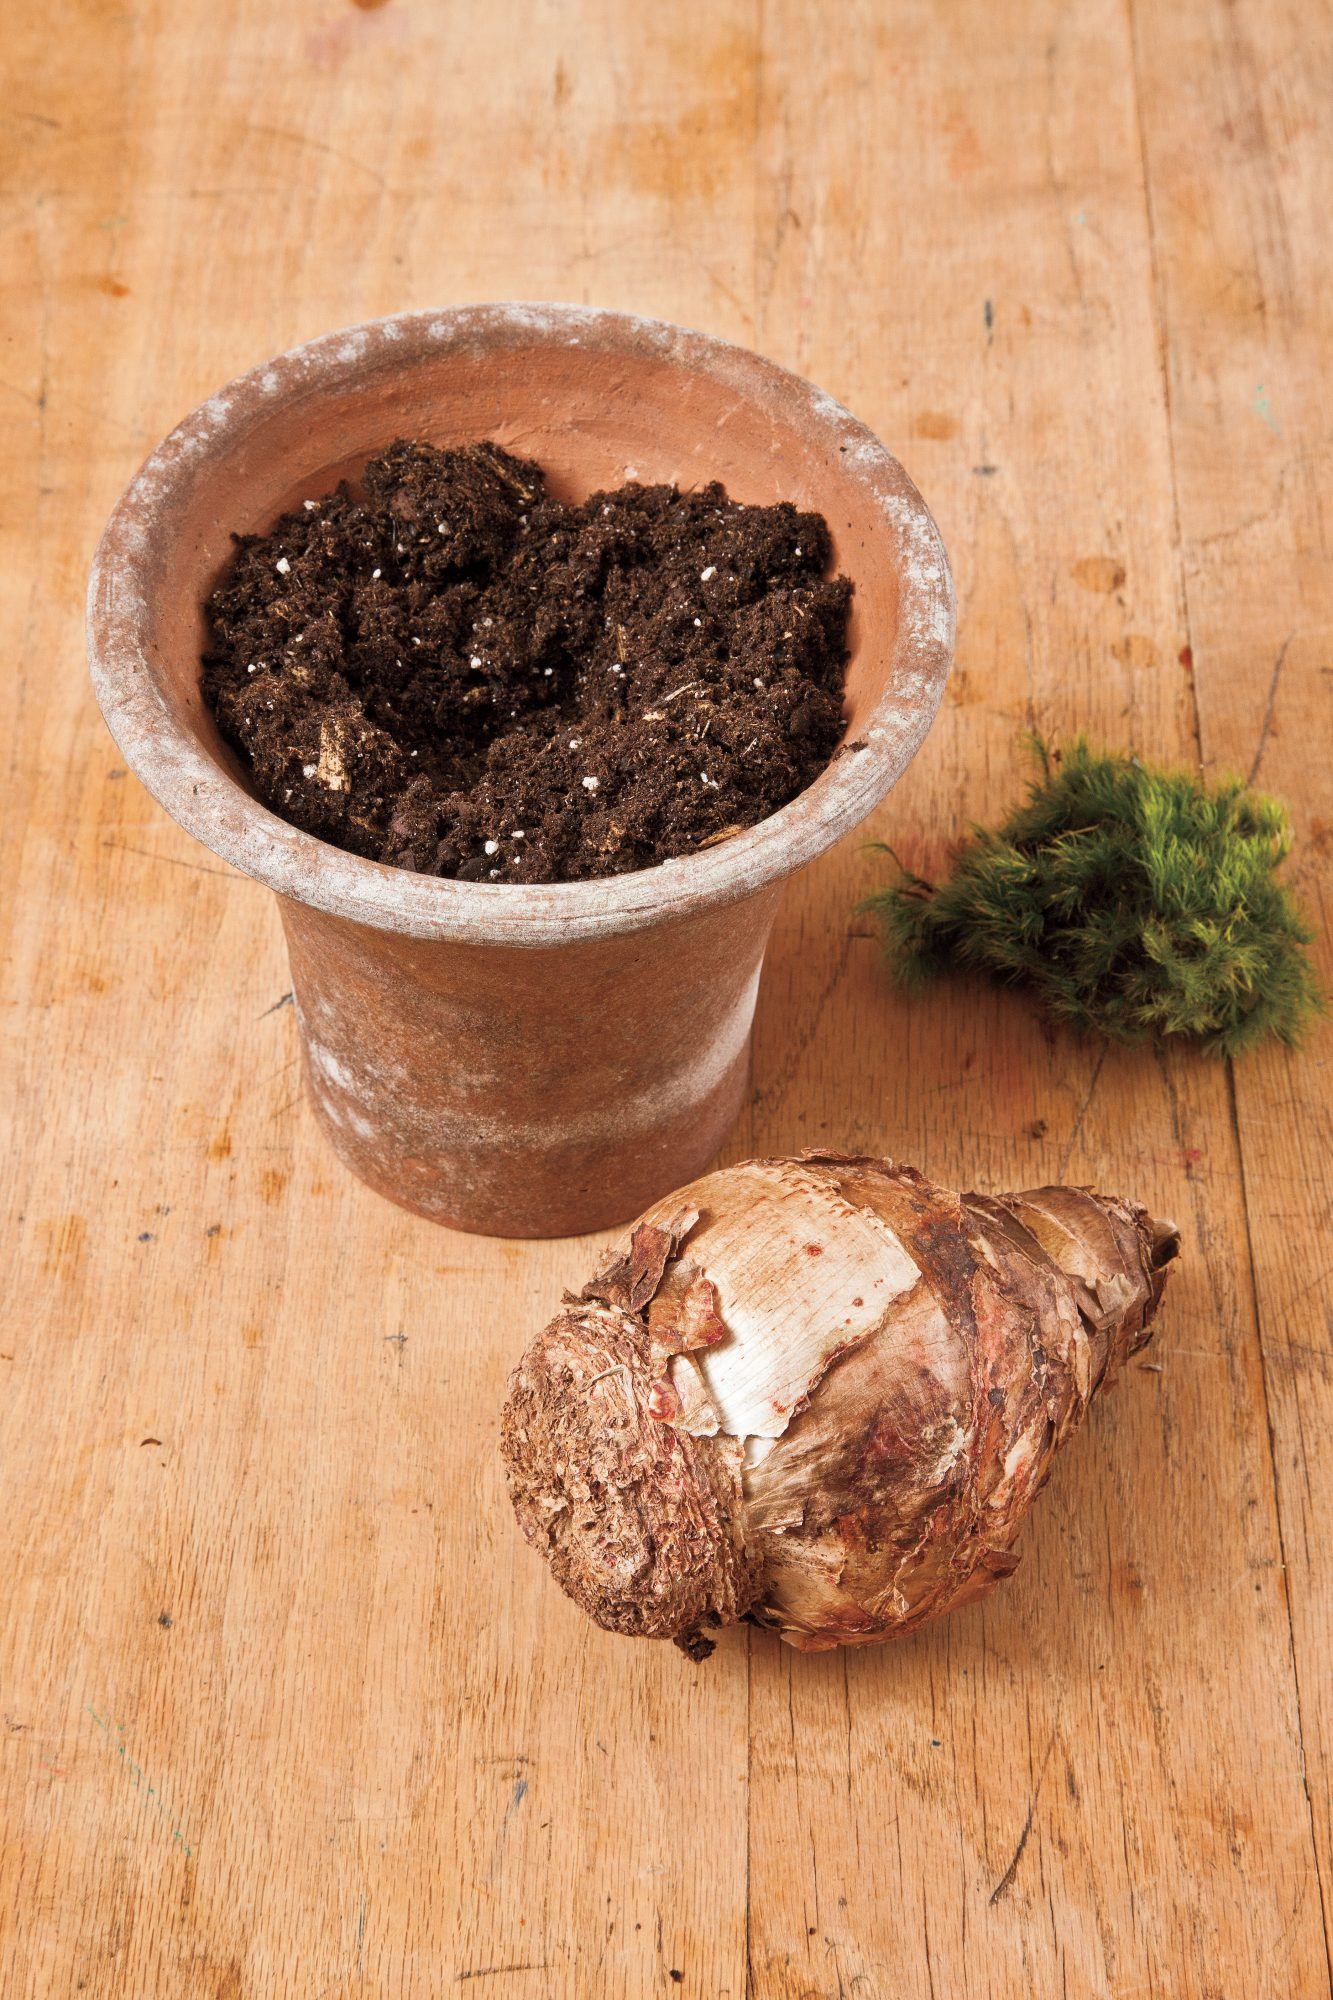 How to Plant Amaryllis Bulbs: Step 1